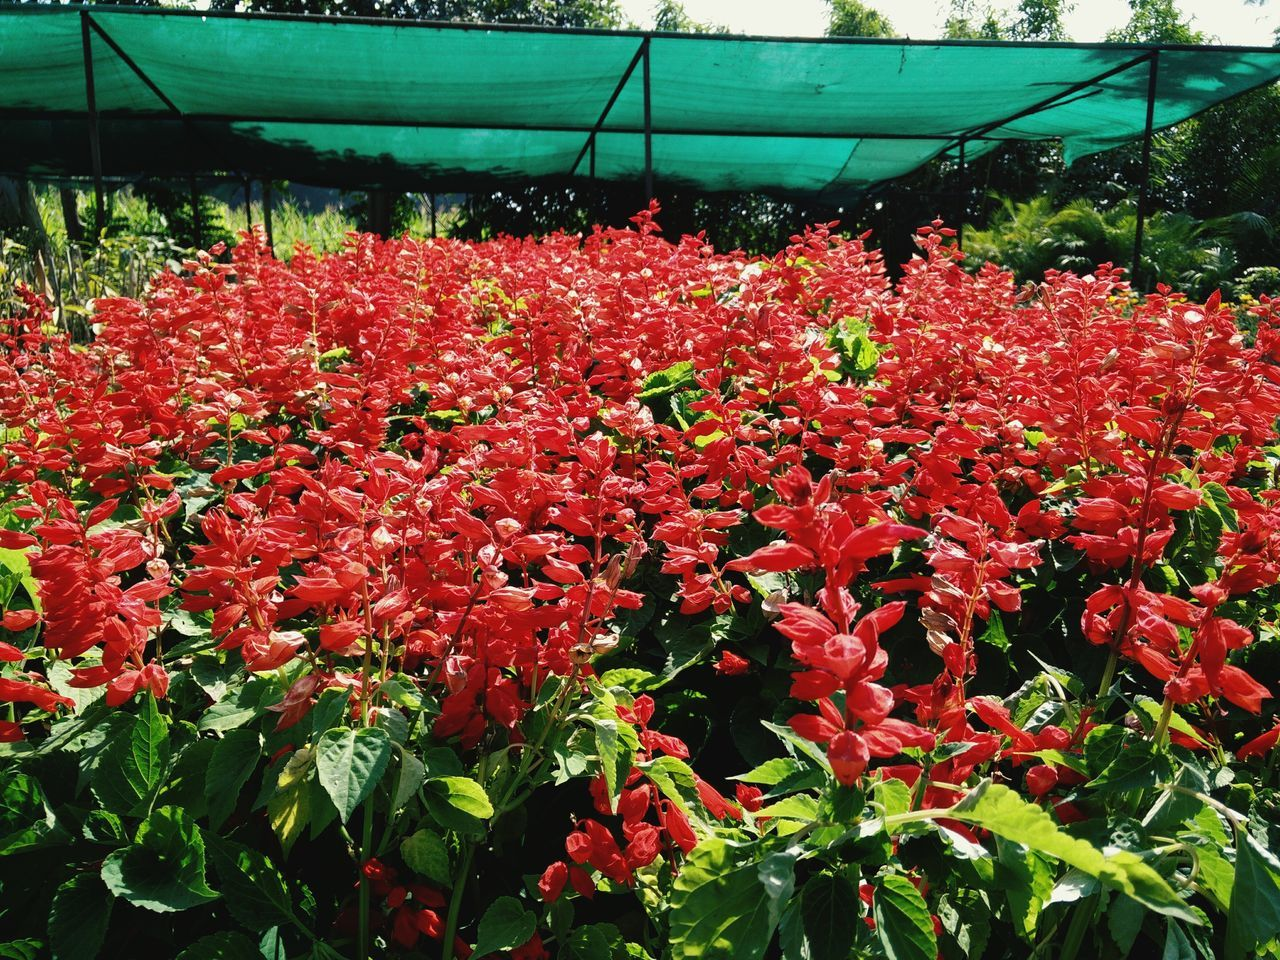 Flower Growth Nature Beauty In Nature Plant Fragility Freshness Red Blossom Greenhouse No People Blooming Day Flower Head Outdoors Close-up